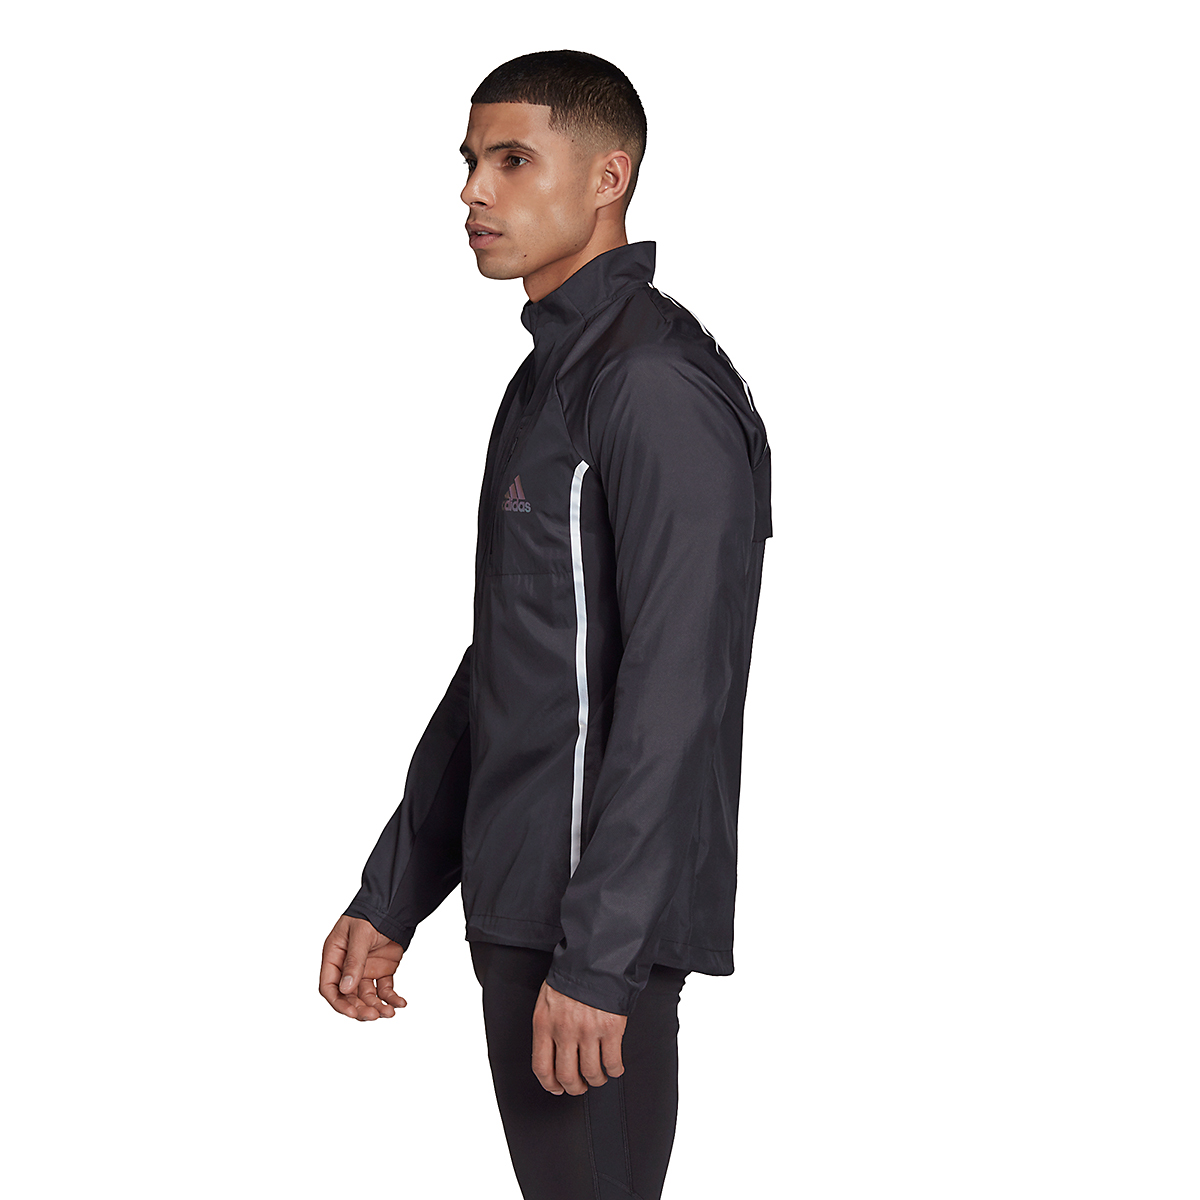 Men's Adidas Runner Night Ready Jacket - Color: Black - Size: S, Black, large, image 2